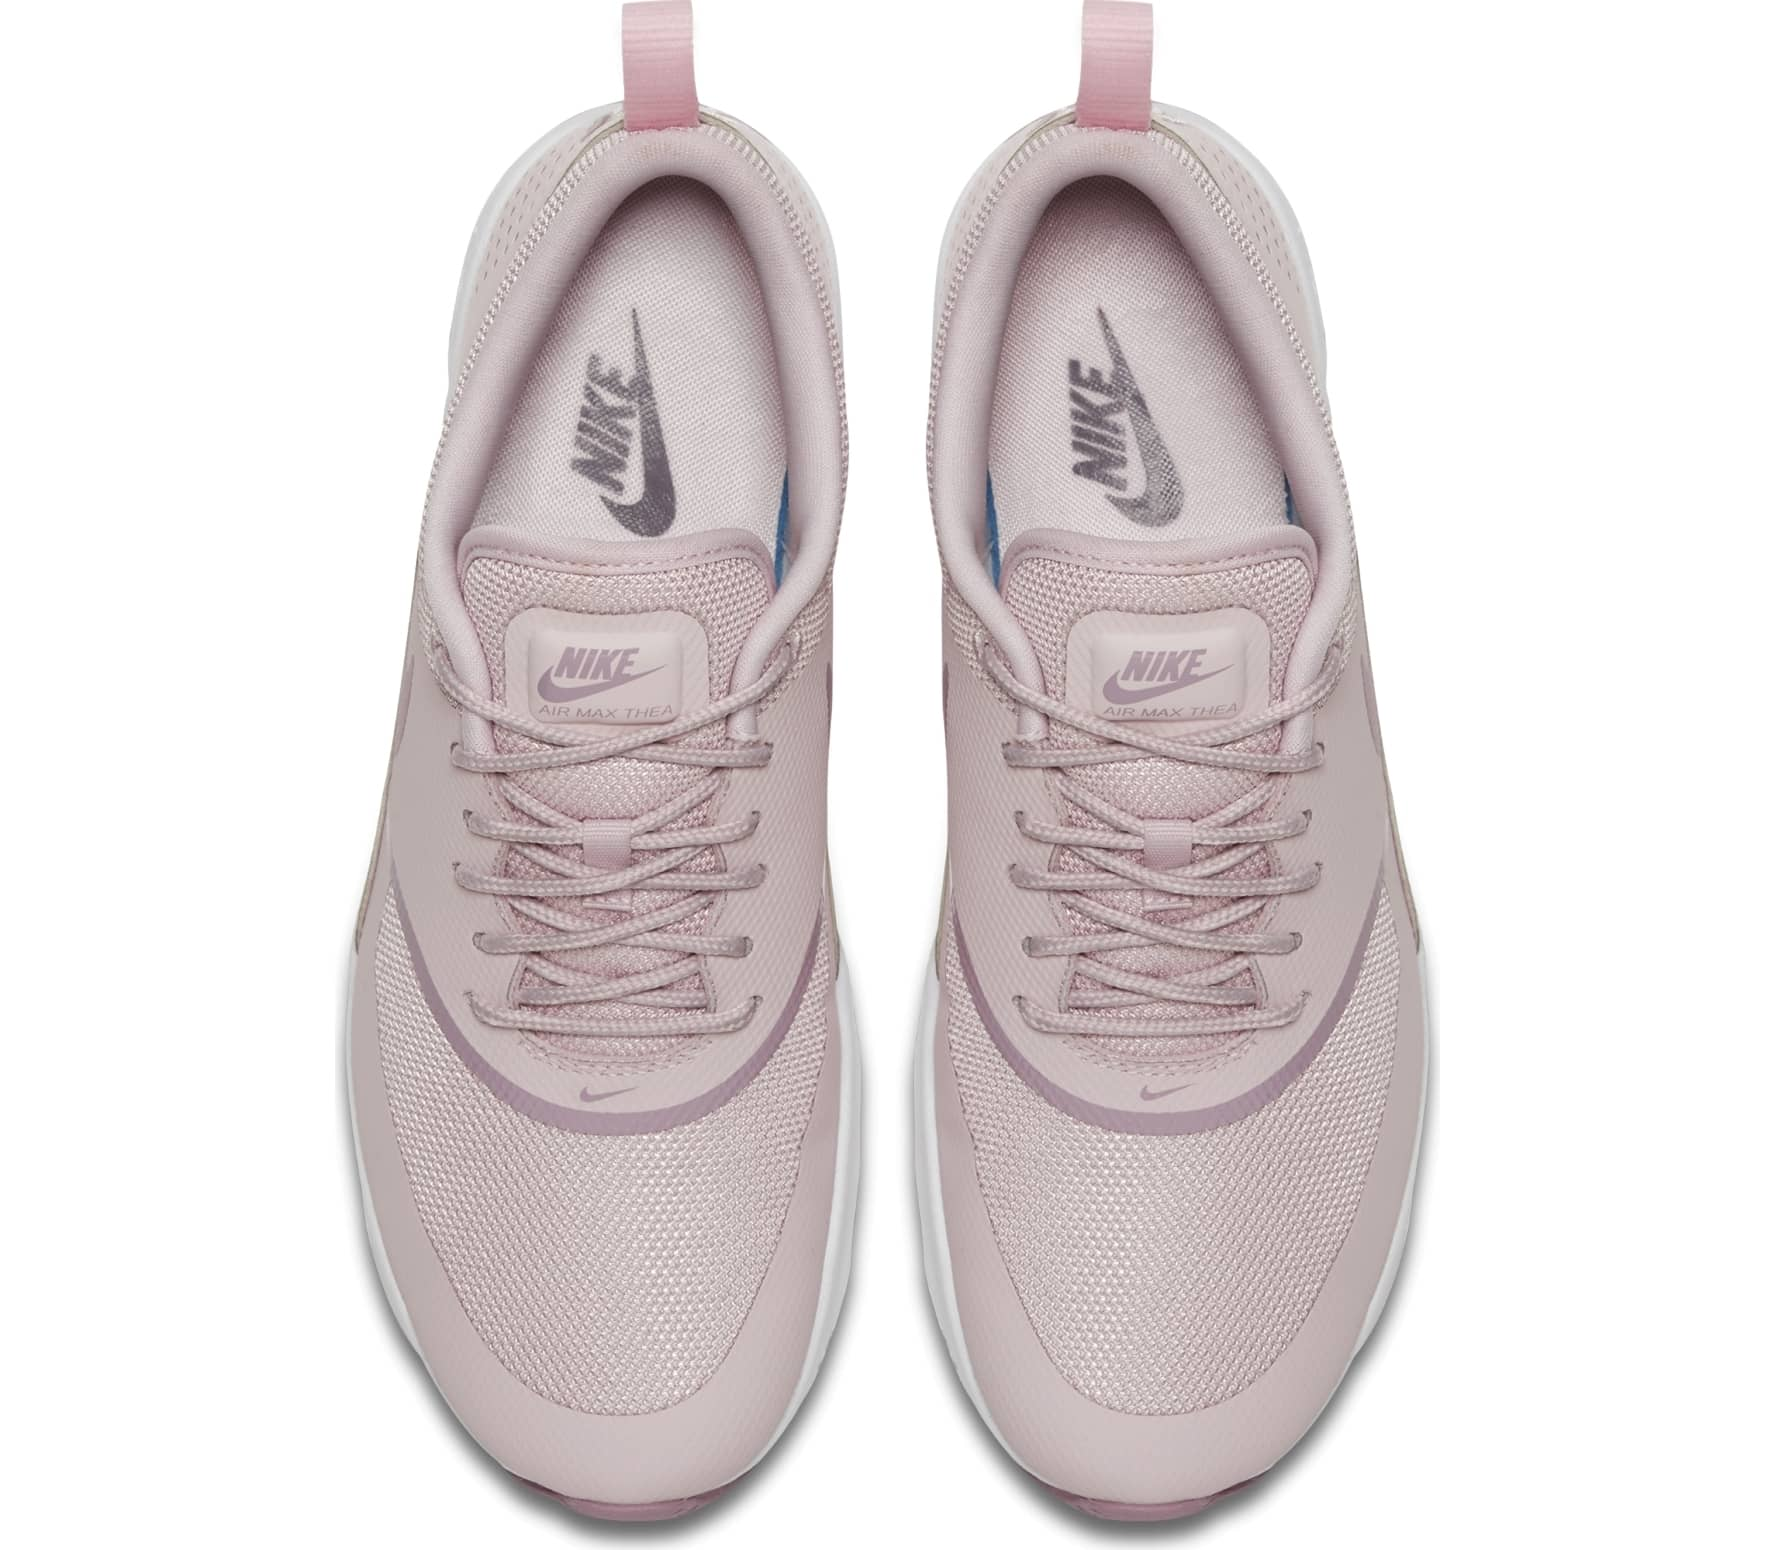 timeless design 54fe0 d7c4a Nike - Air Max Thea women s running shoes (pink white)